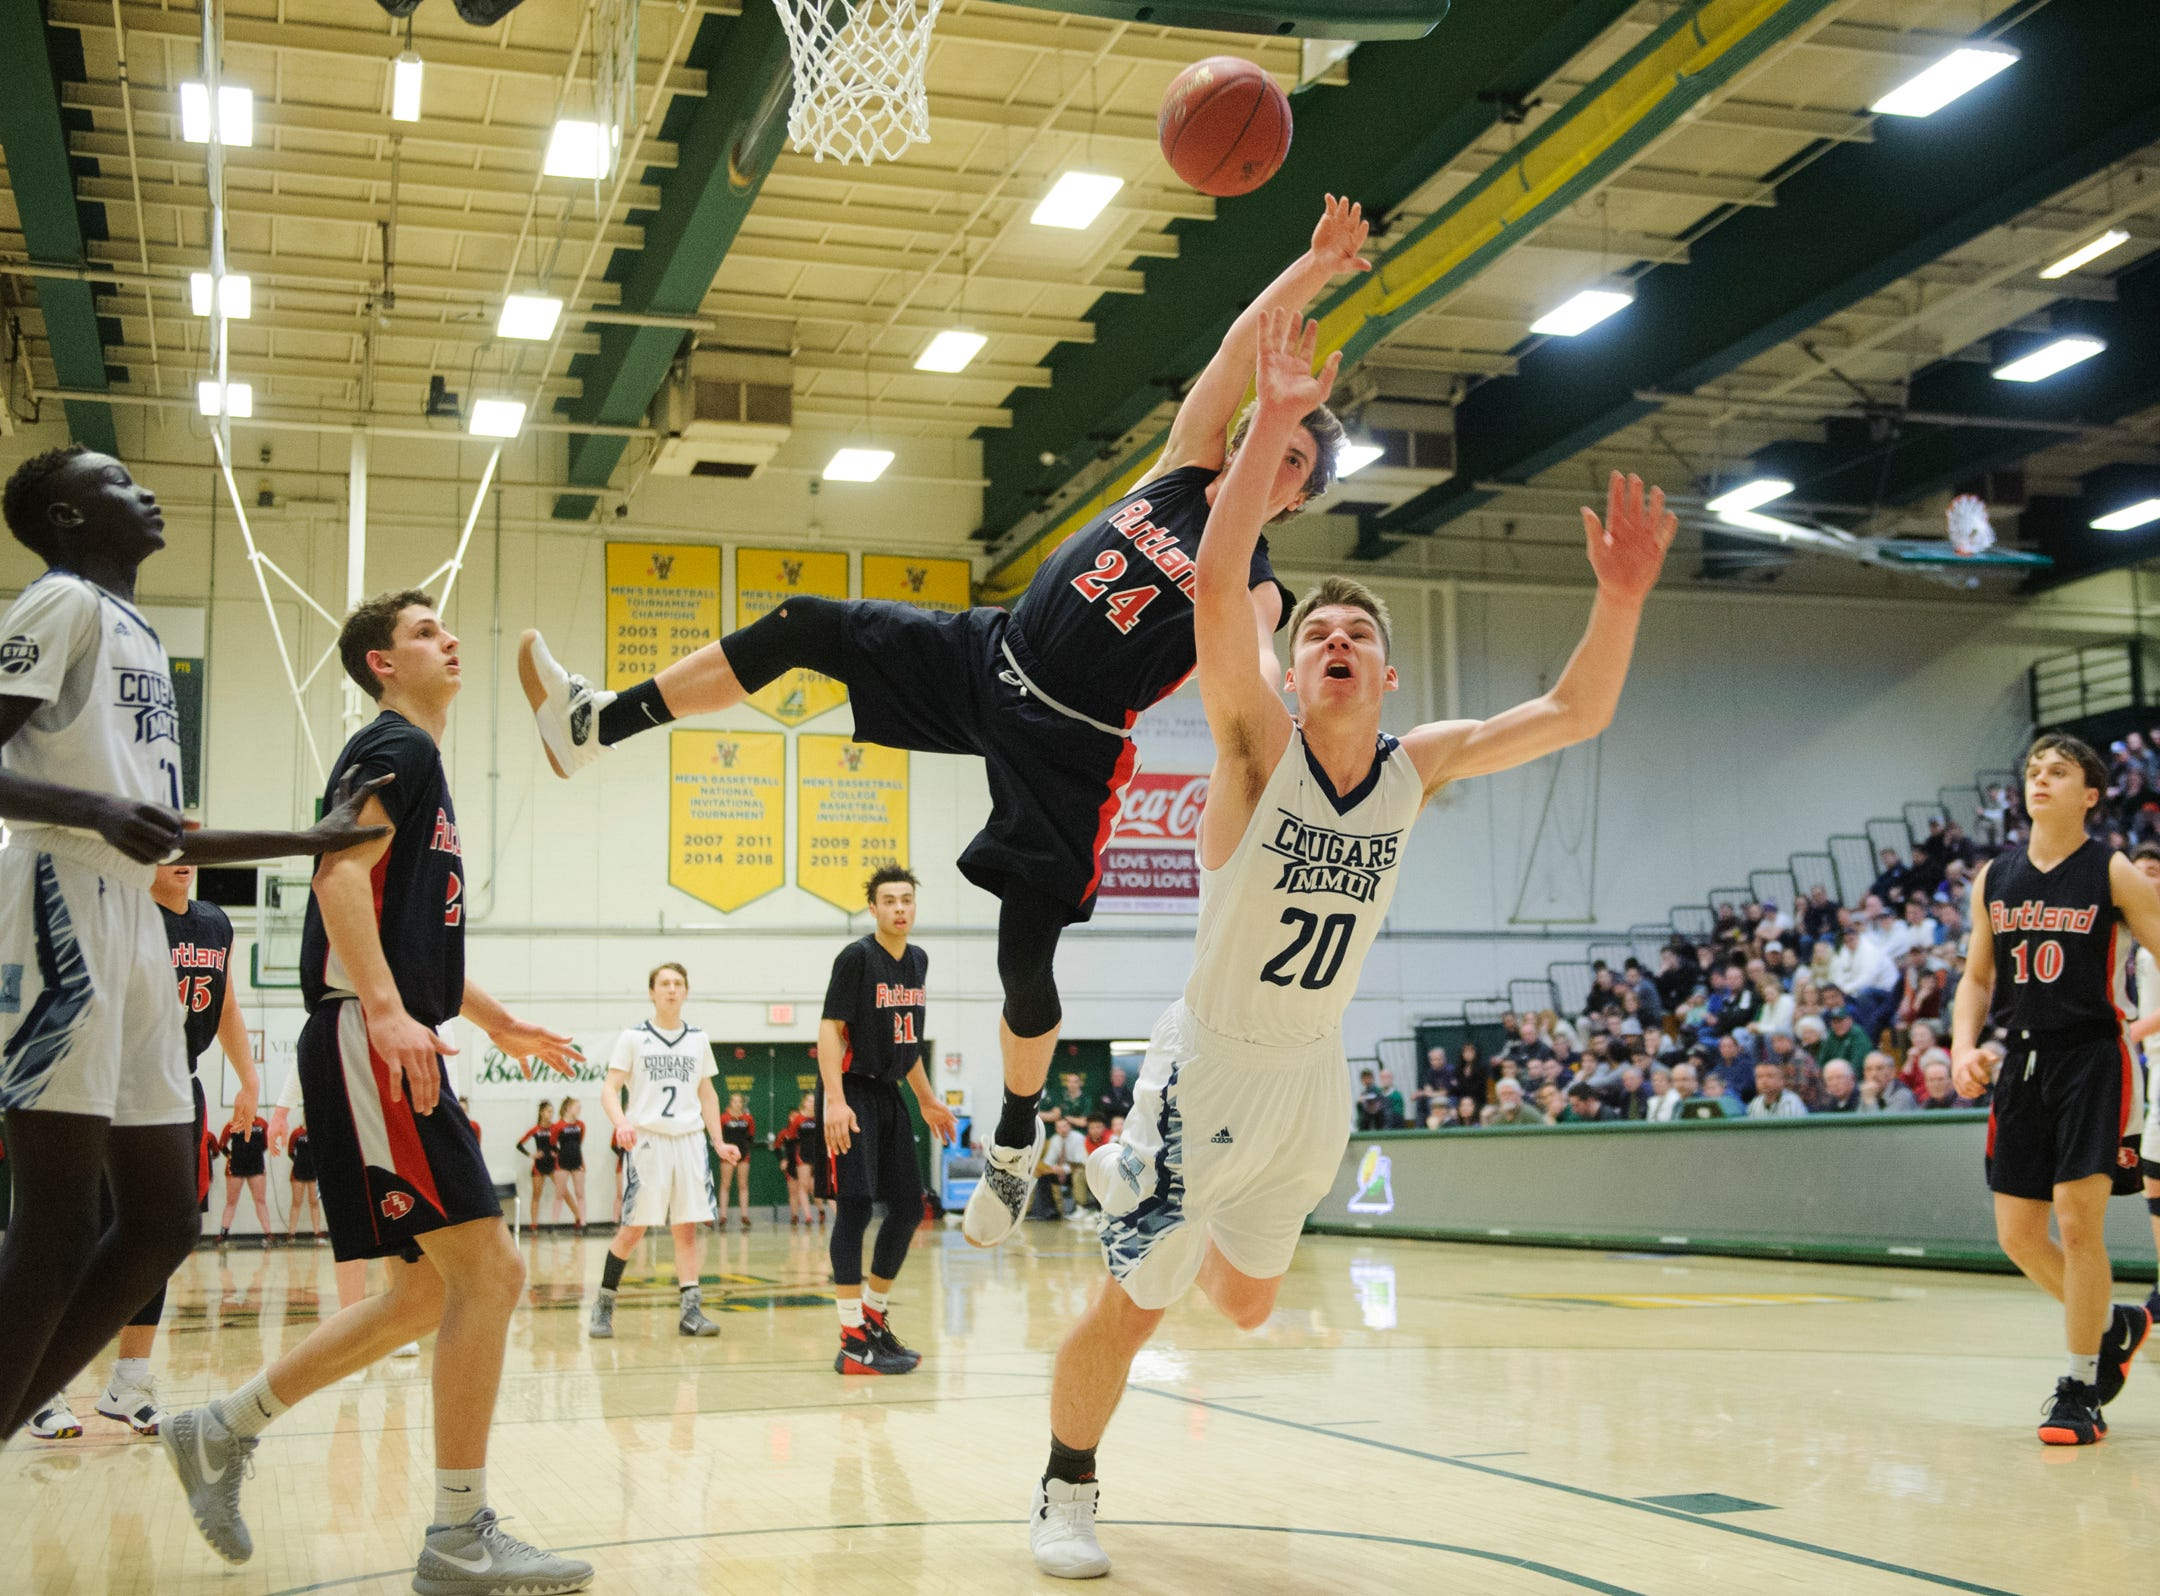 Rutland's Jacob Lorman (24) fouls MMU's Connor Philbrick (20) as he leaps for a lay up during the boys DI semi final basketball game between the Rutland Raiders and the Mount Mansfield Cougars at Patrick Gym on Monday night March 11, 2019 in Burlington, Vermont.